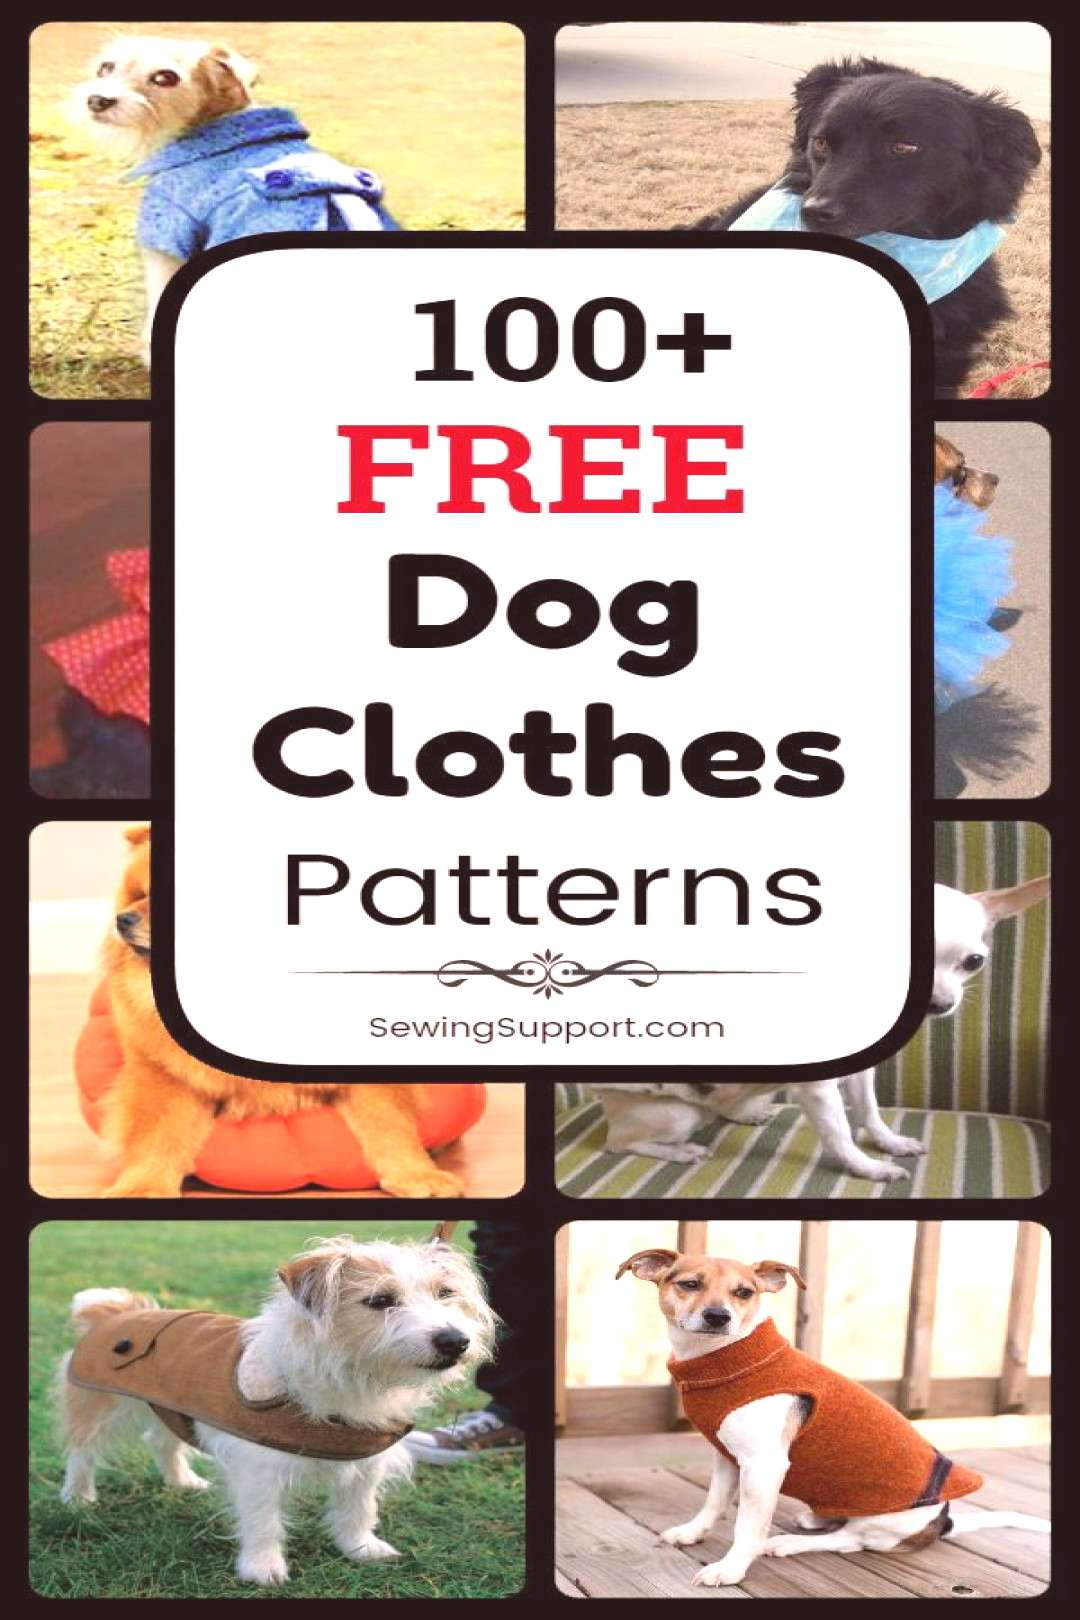 100+ Free Dog Clothes Patterns DIY Dog Clothes. 100+ free dog clothes patterns, tutorials, and diy